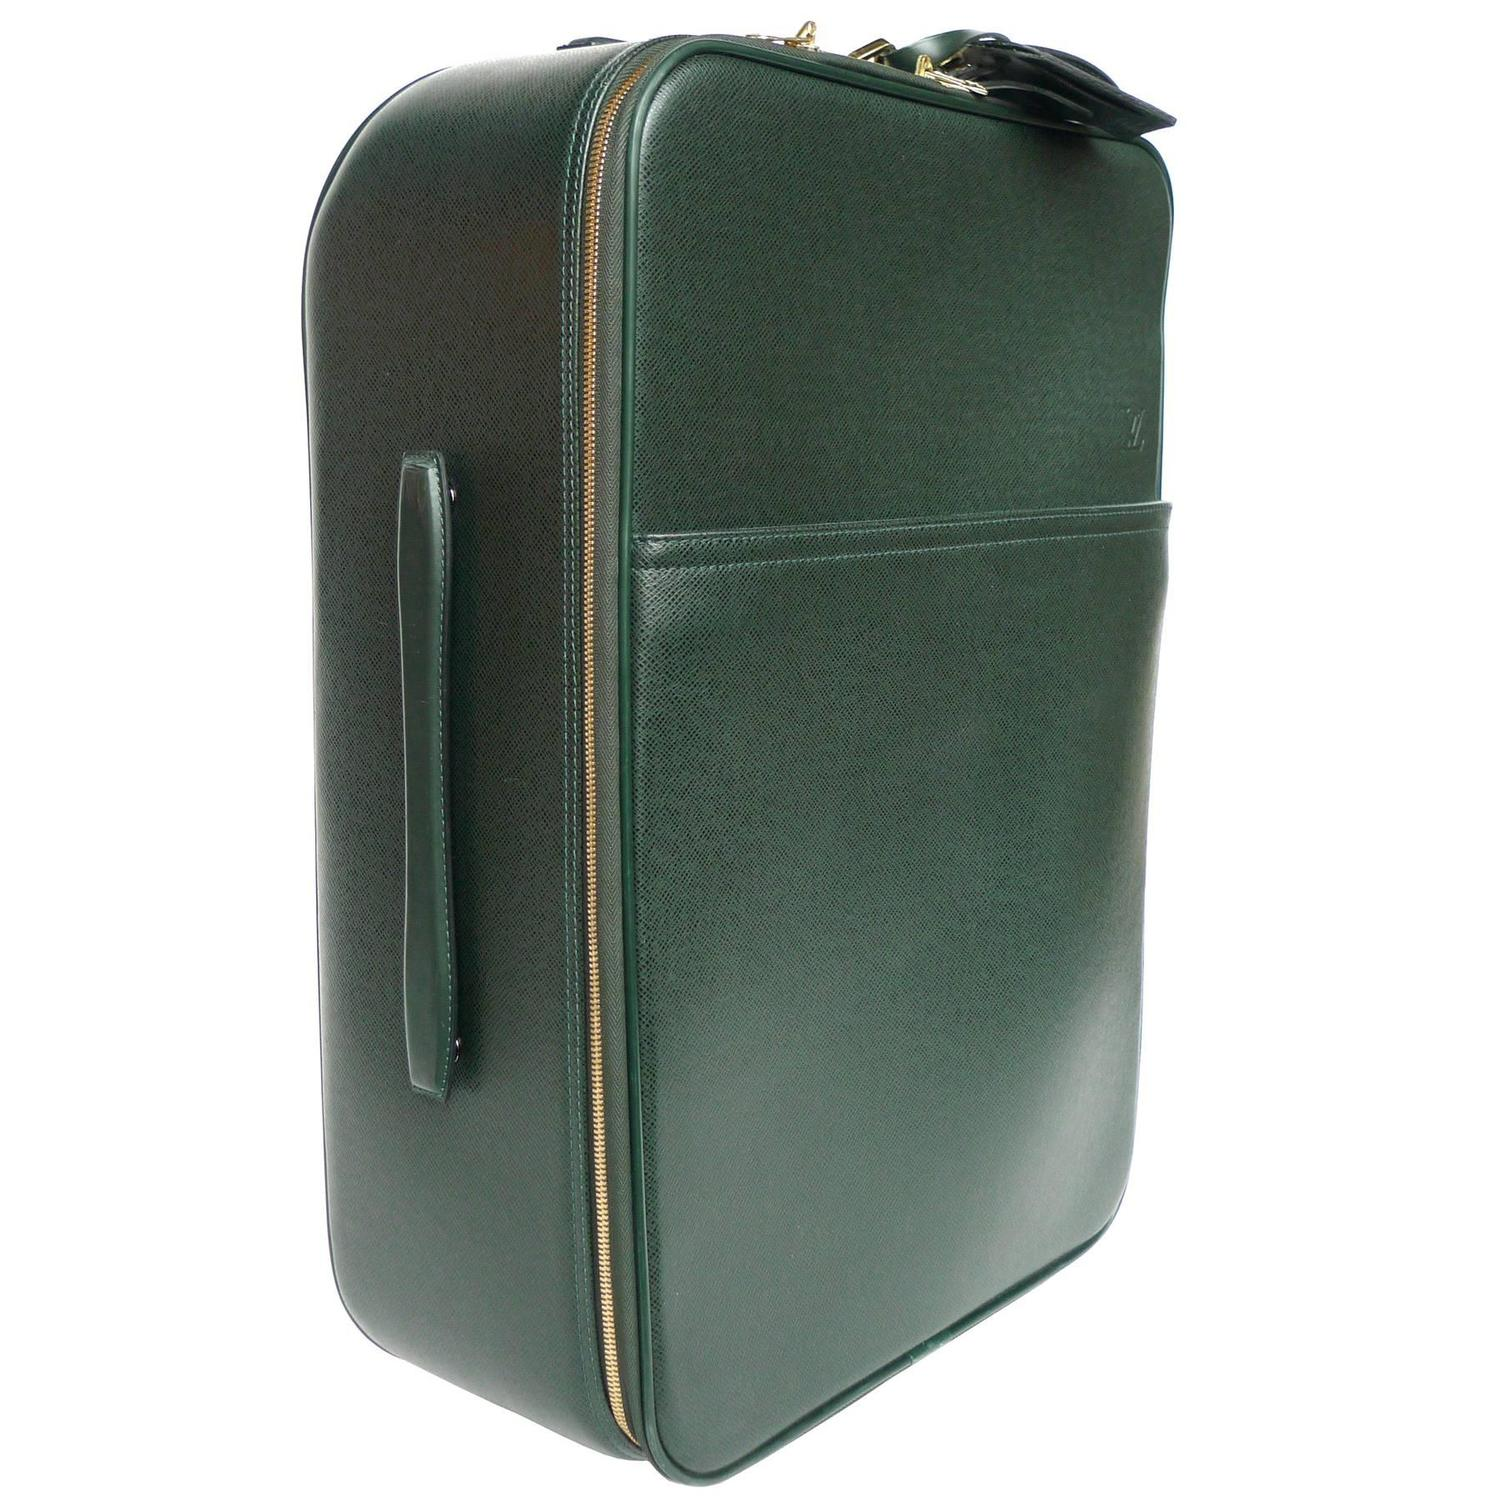 Louis Vuitton Green Pégase 55 Taiga Leather Travel Suitcase at 1stdibs